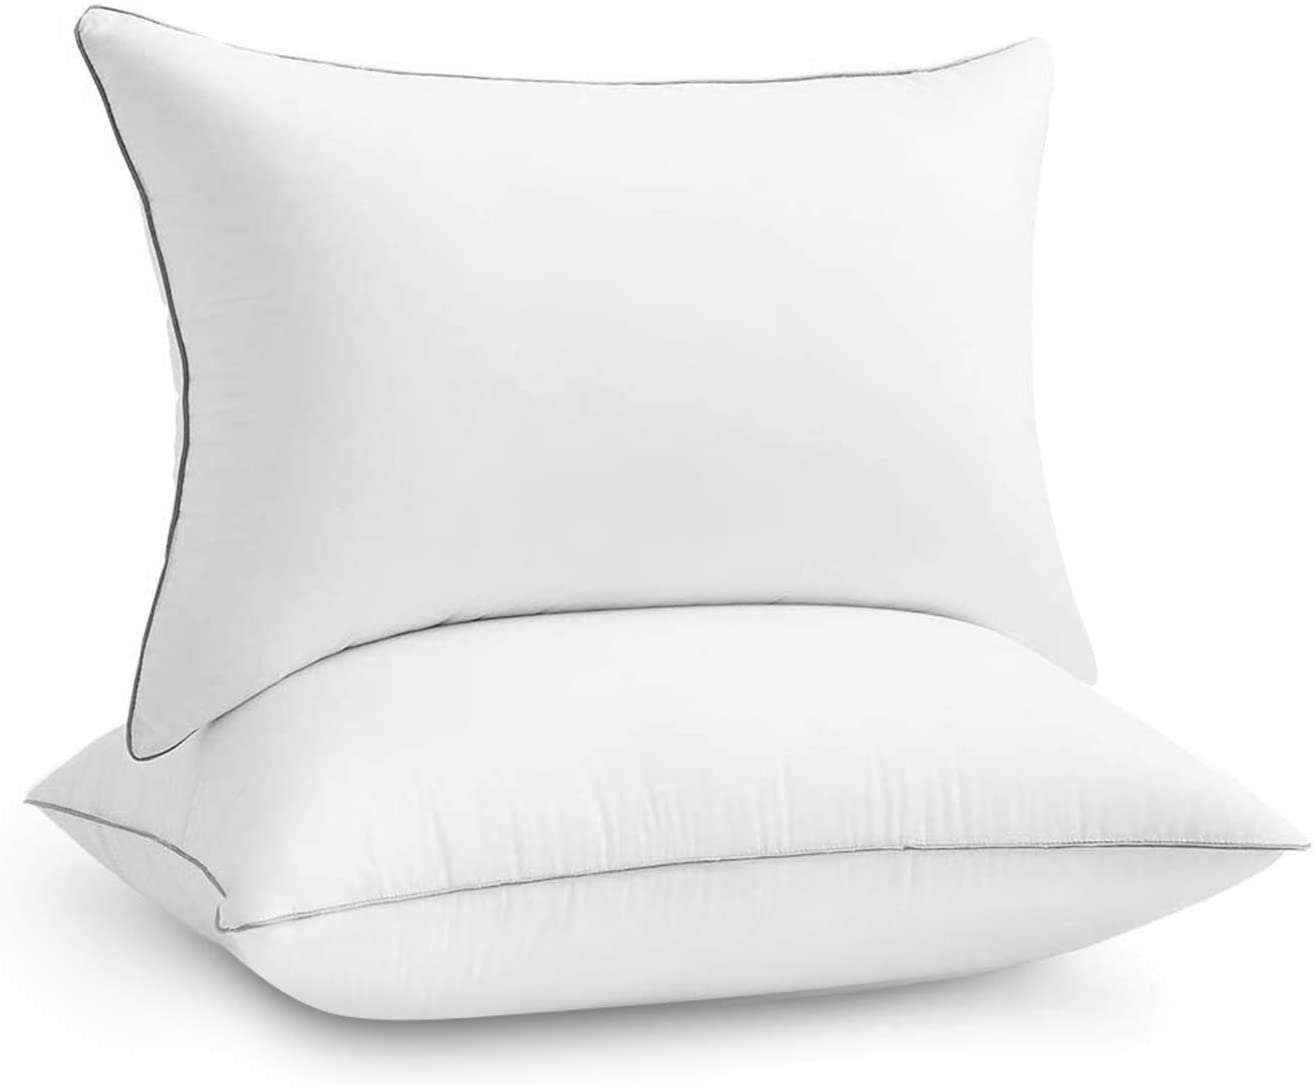 Emolli Hotel Bed Pillows for Sleeping - 2 Pack Luxury Plush Pillows, 100%  Cotton Cover and Super Soft Down Alternative Microfiber Filled Pillows,  Standard Size, 20 x 26 inches : Home & Kitchen - Amazon.com